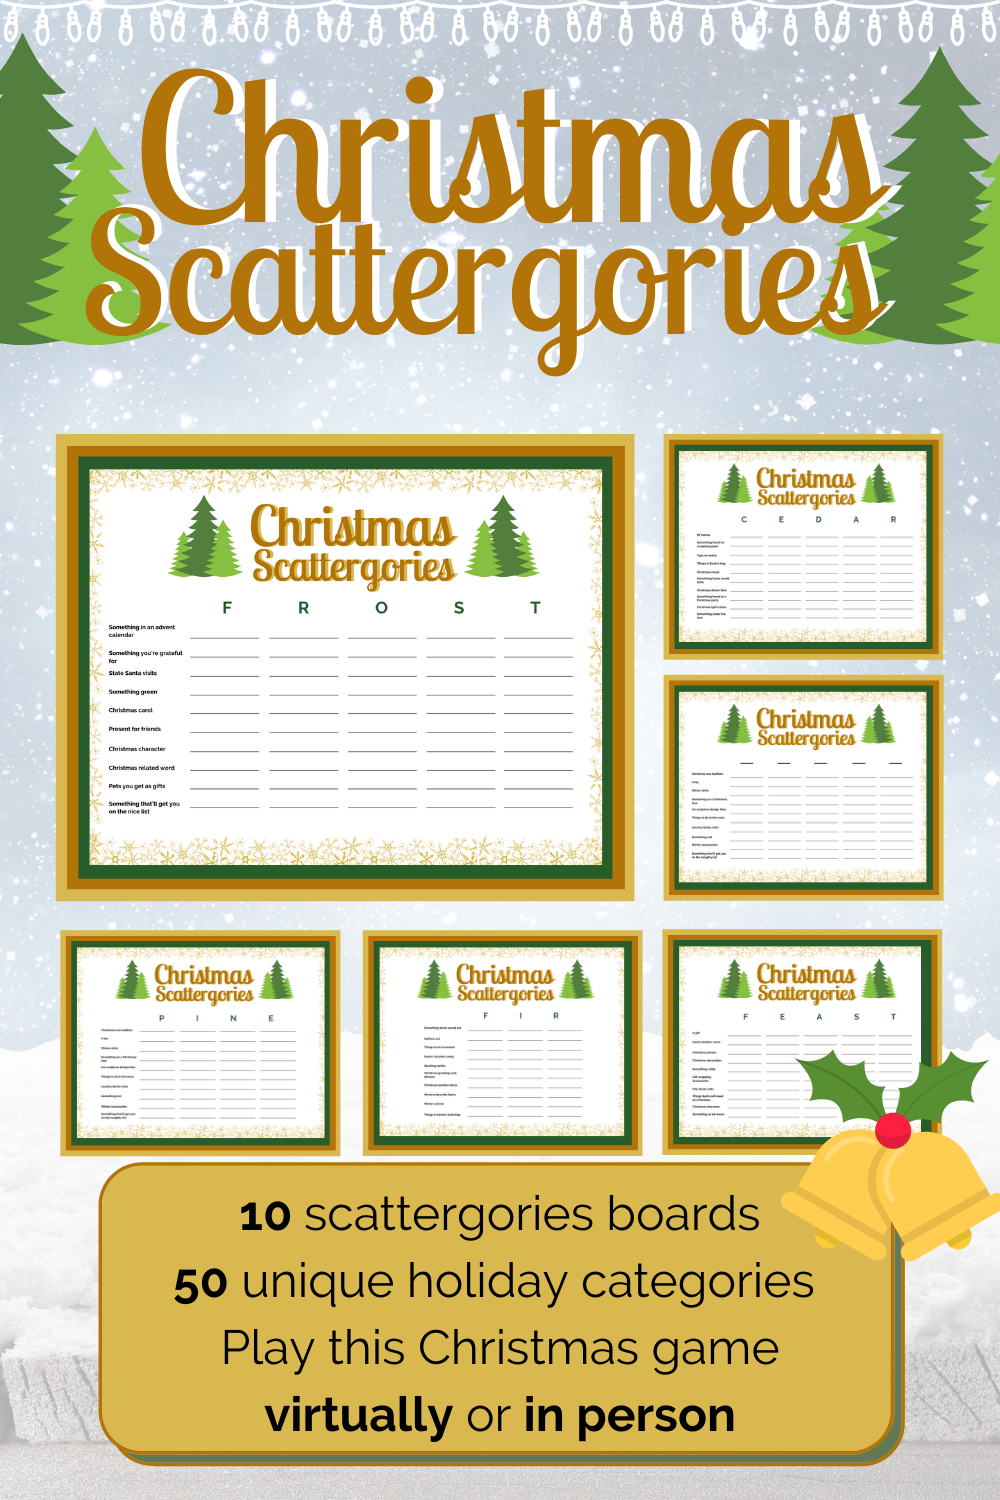 Scattergories Christmas Game - Family Holiday Games - Virtual Christmas Games